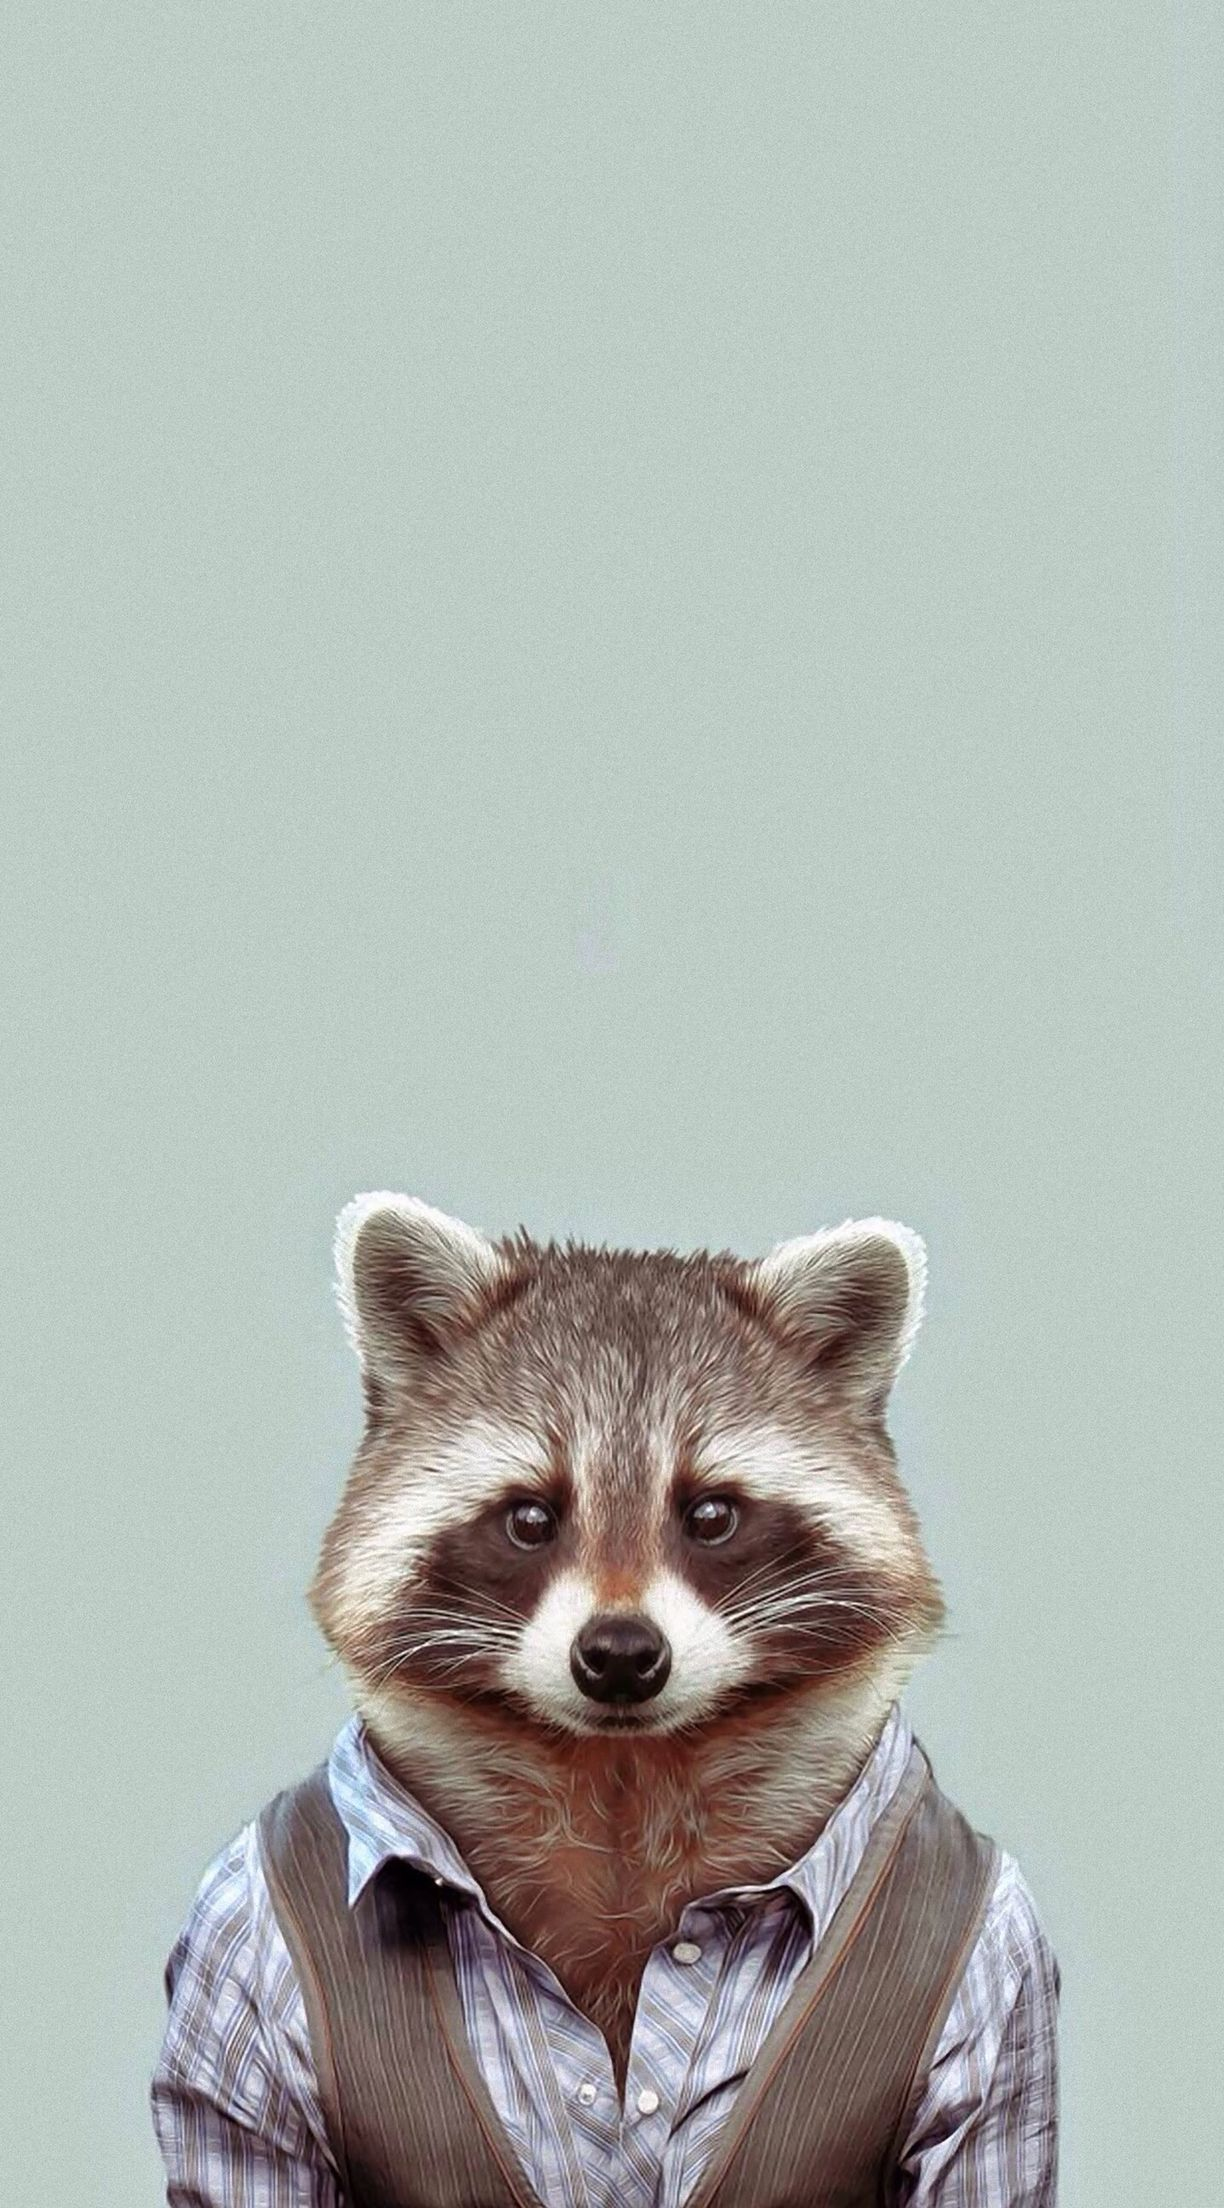 e8c5ce843f Raccoon wearing clothes art Best Photo Frames